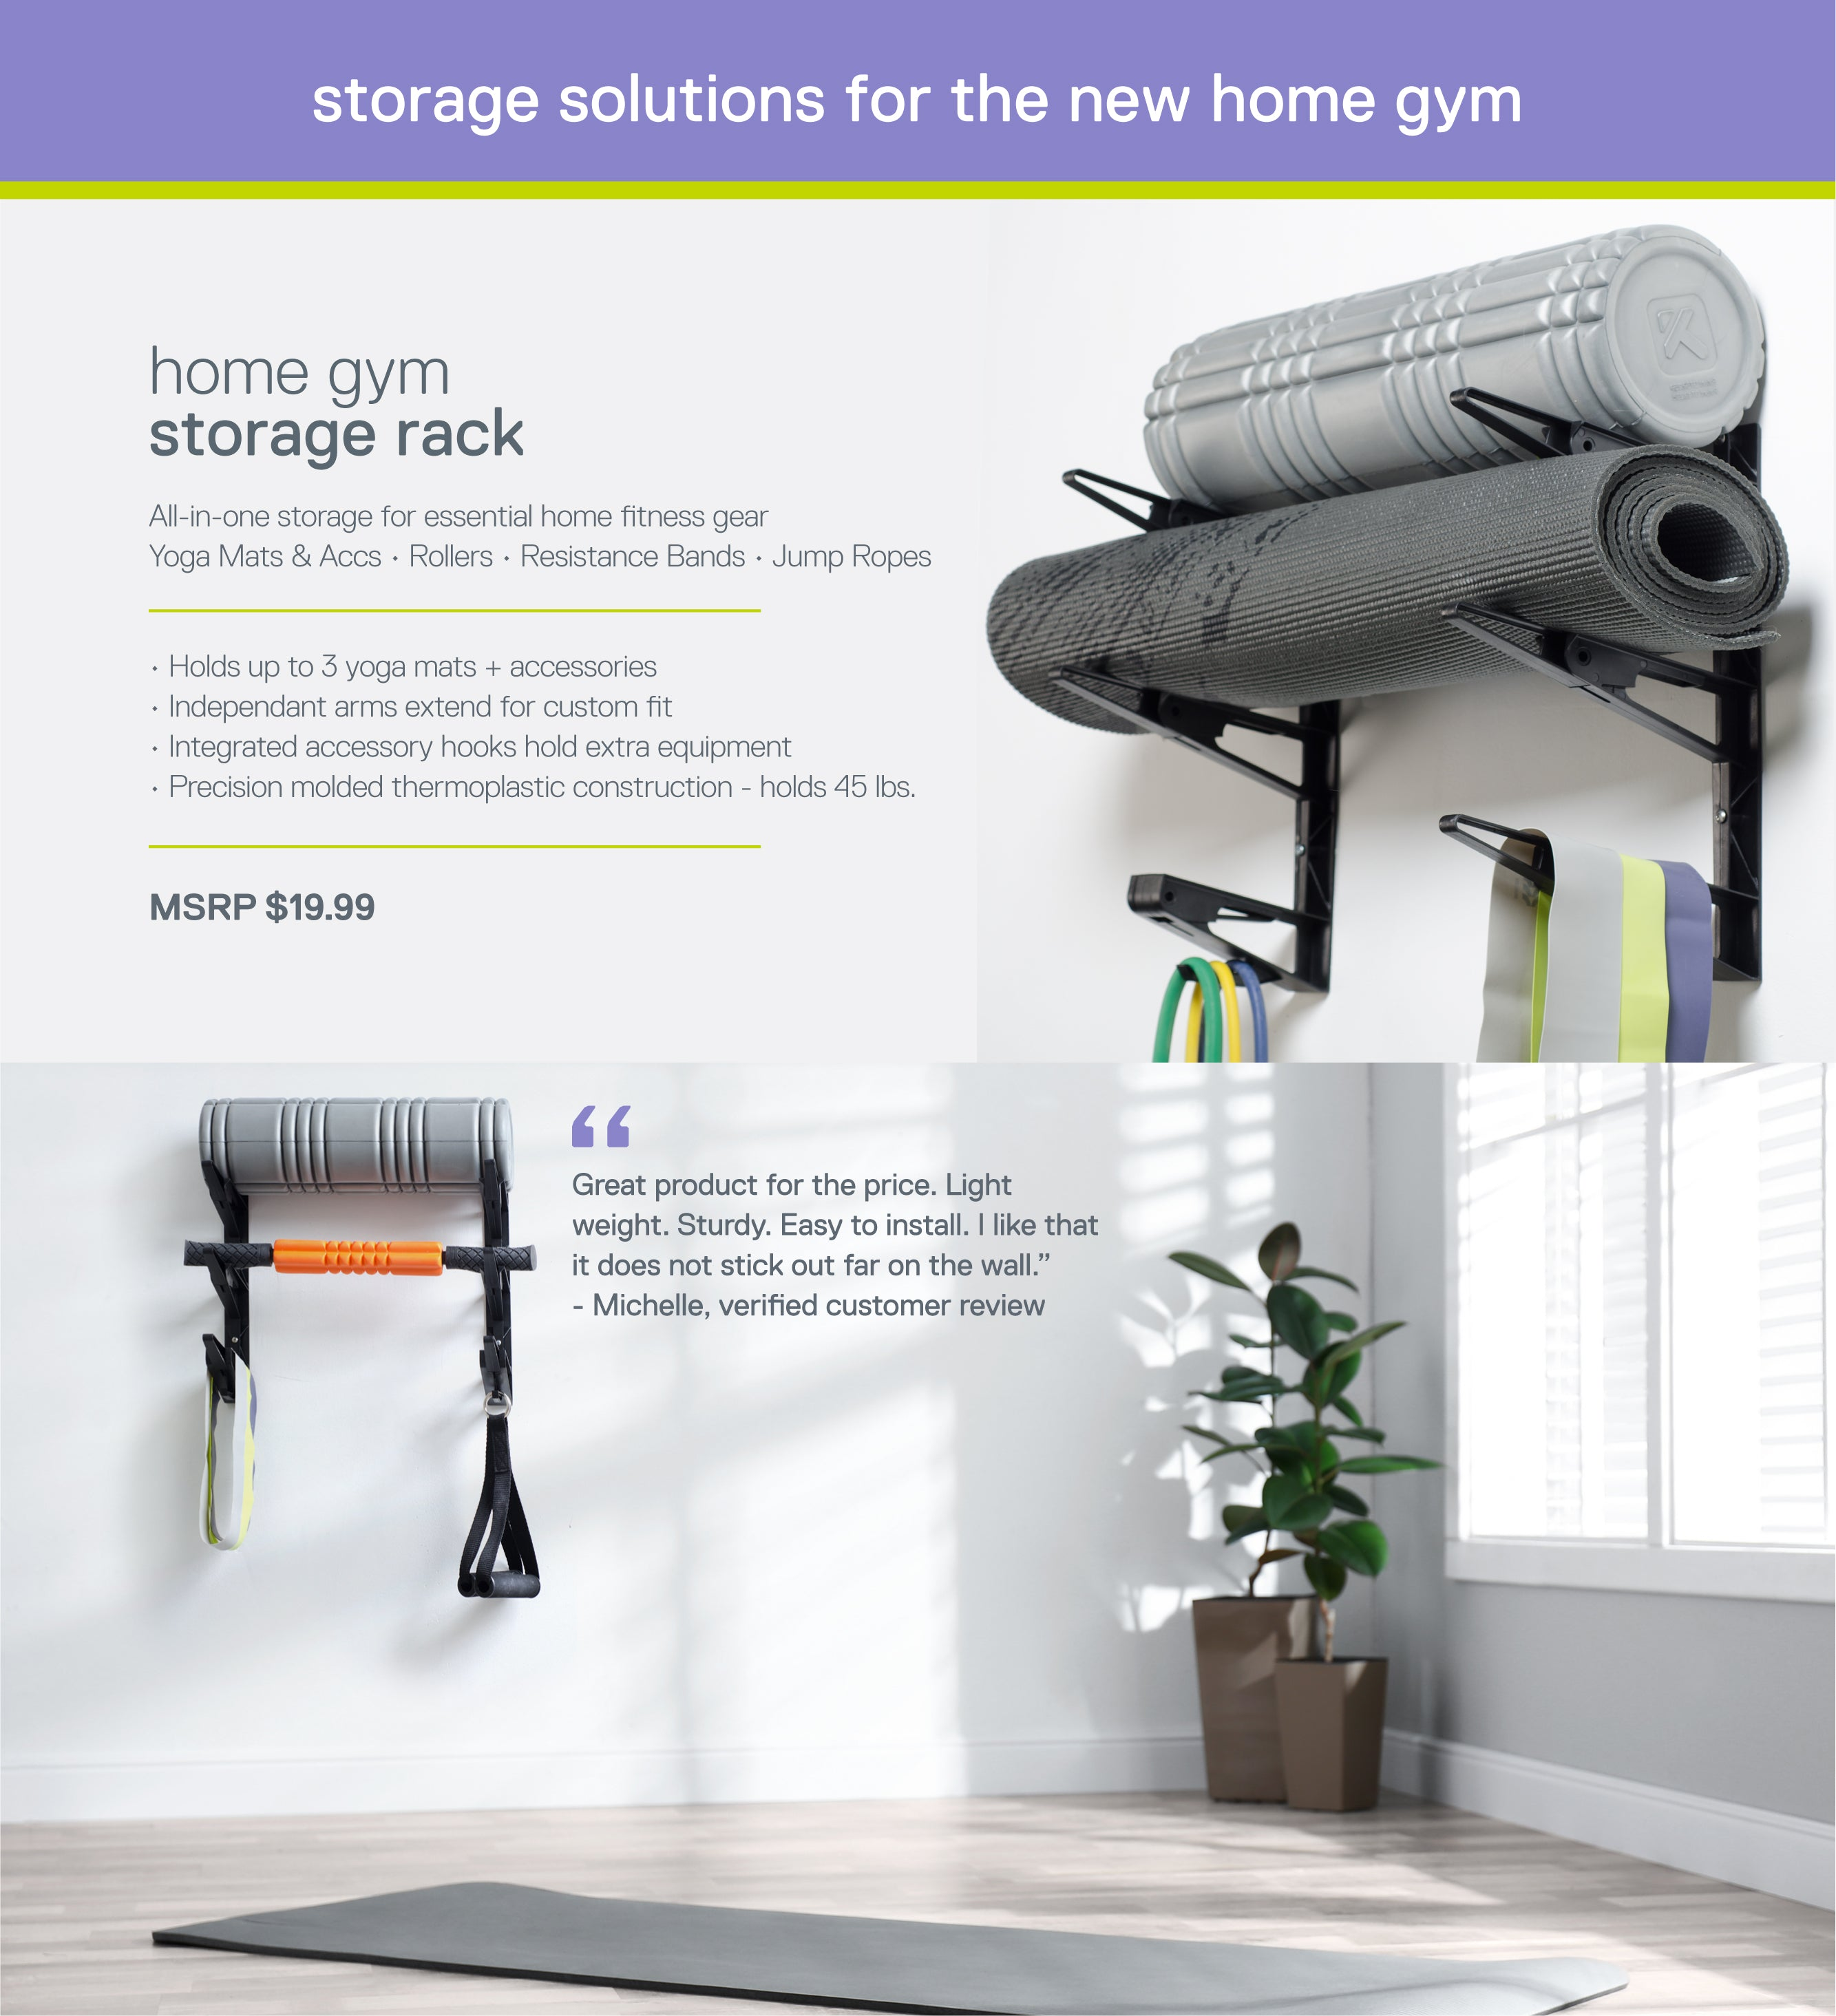 Home Gym Storage Rack